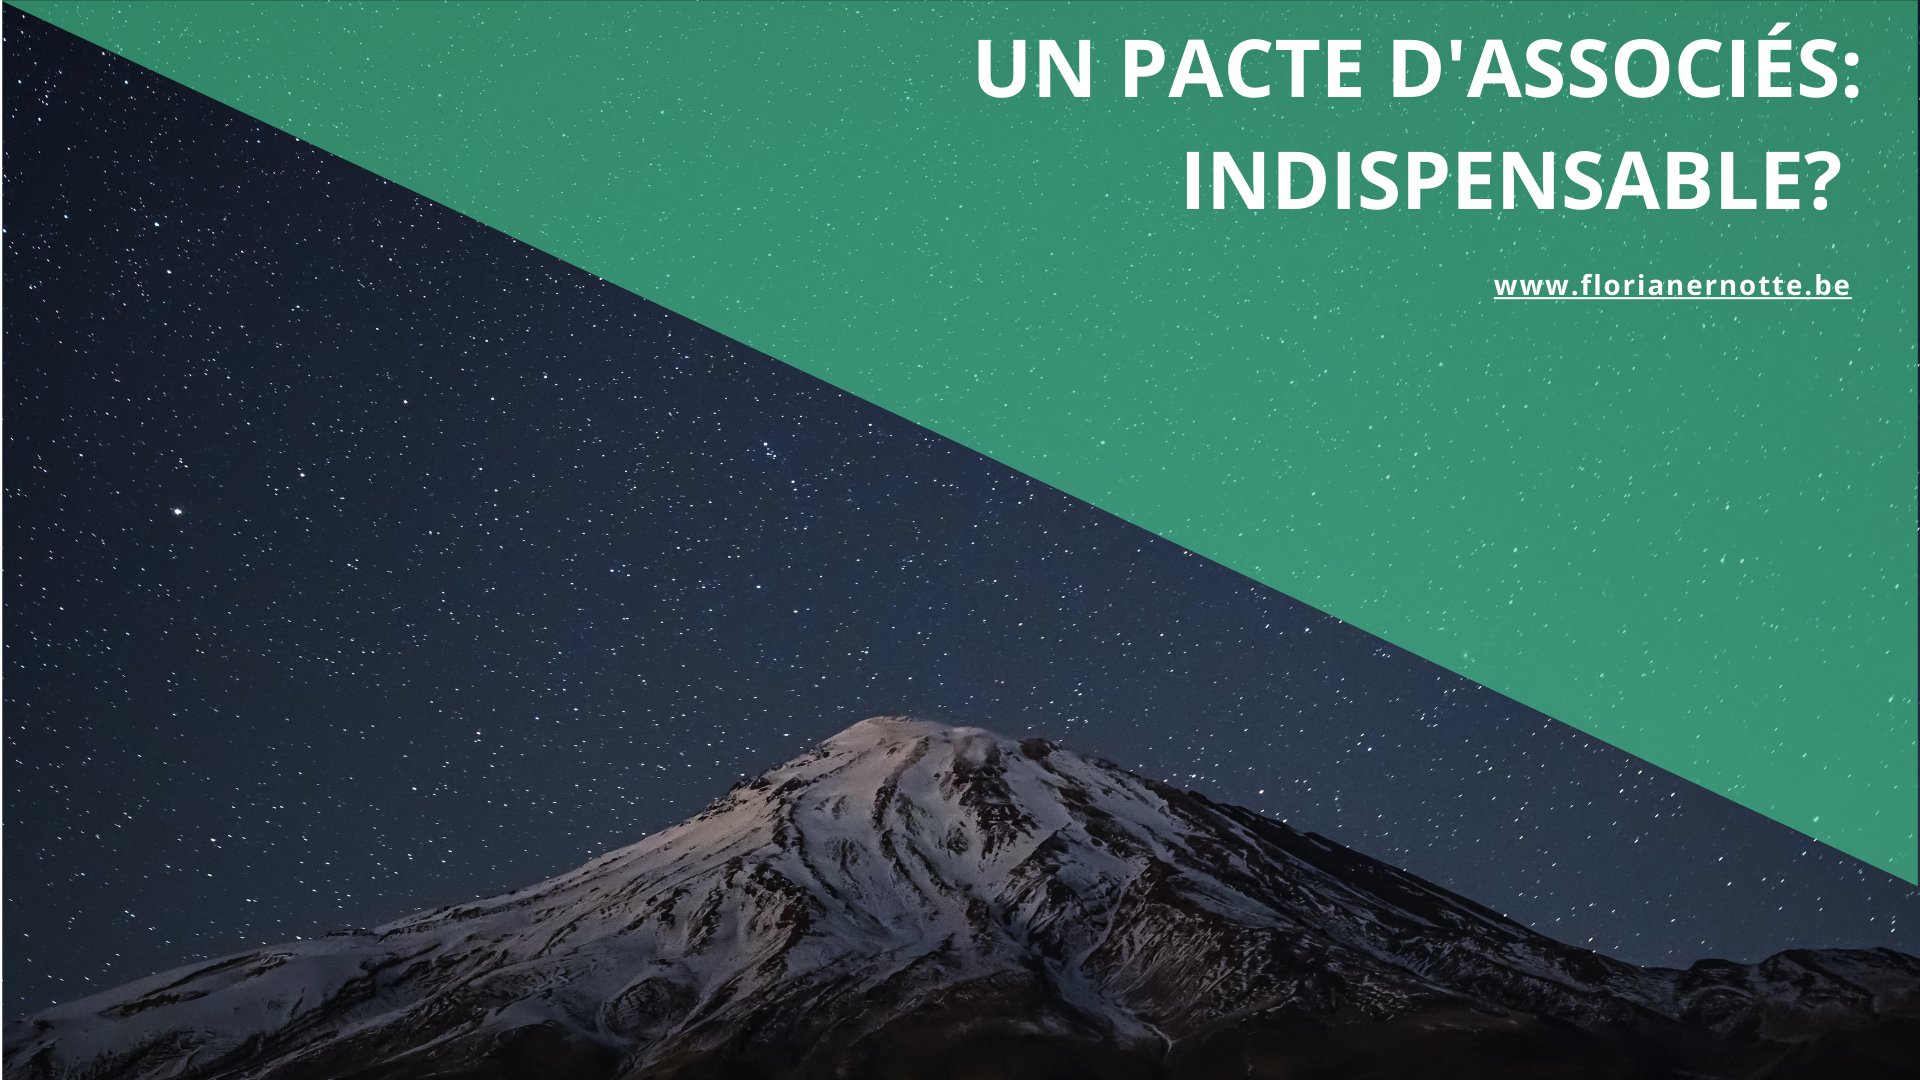 Un pacte d'associés: indispensable?<div class='yasr-stars-title yasr-rater-stars-vv' id='yasr-visitor-votes-readonly-rater-f06a4f4274468' data-rating='0' data-rater-starsize='16' data-rater-postid='3173' data-rater-readonly='true' data-readonly-attribute='true' ></div><span class='yasr-stars-title-average'>0 (0)</span>